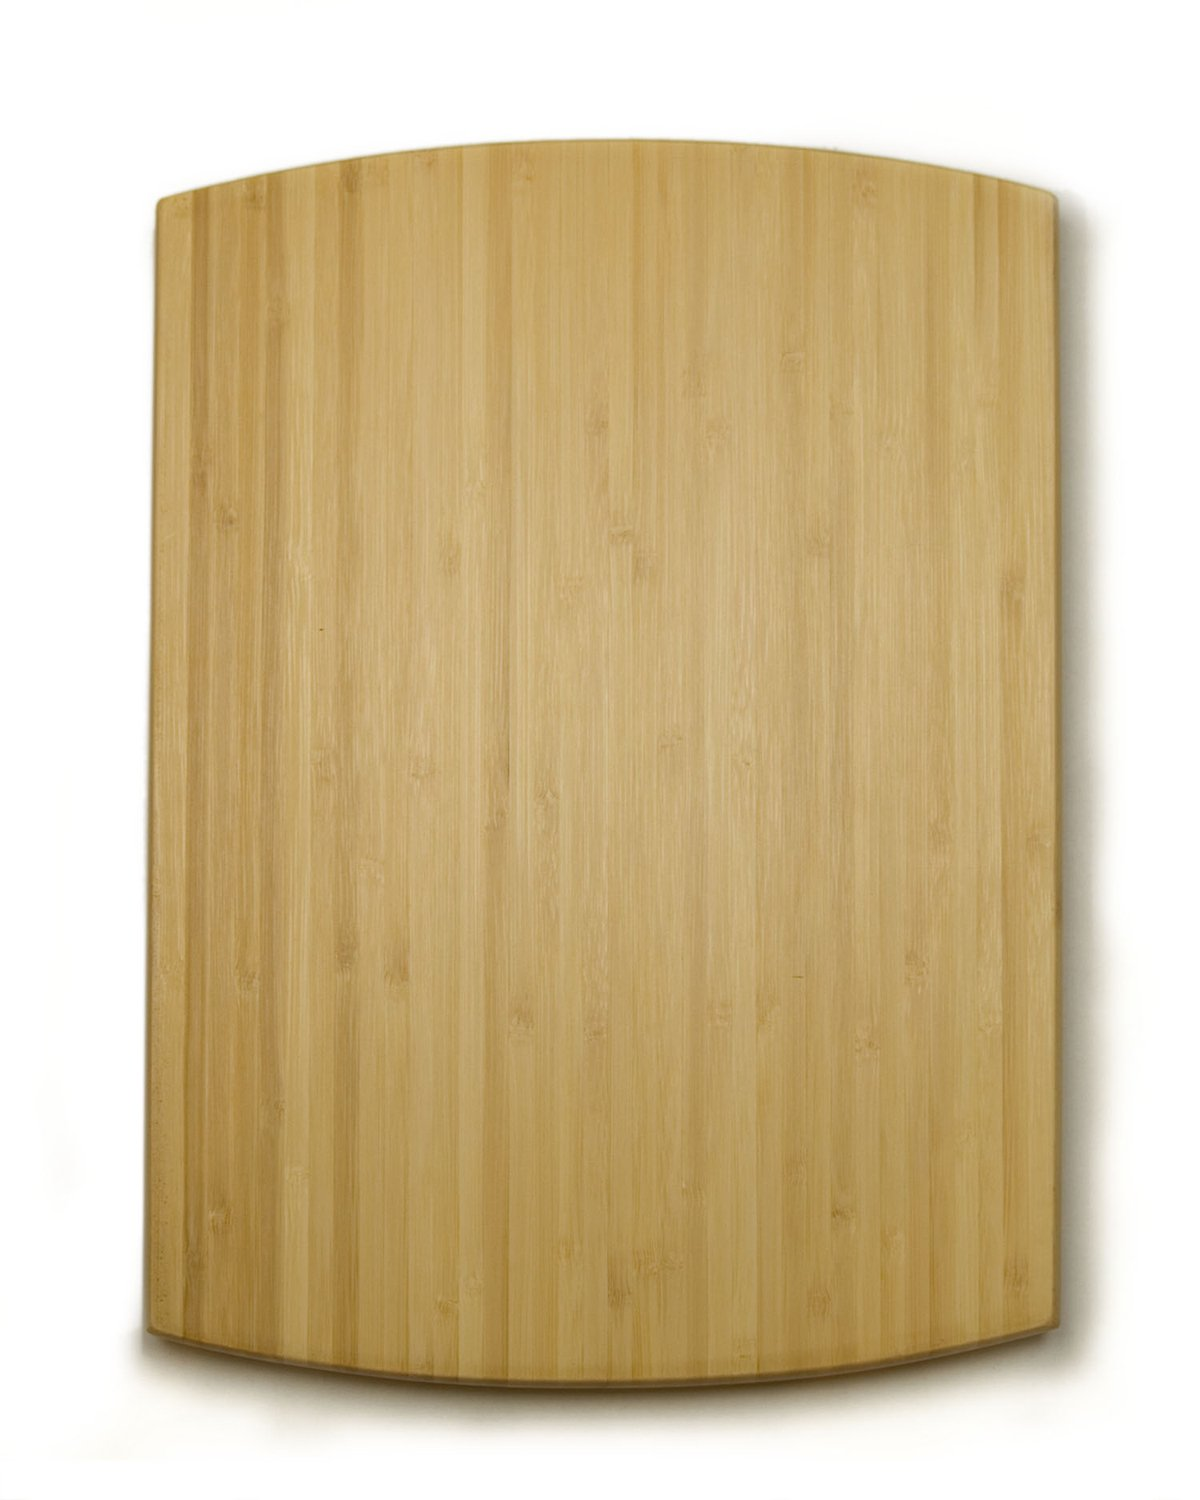 Architec The Gripper 5-by-7-Inch Bamboo Cutting Board BG7